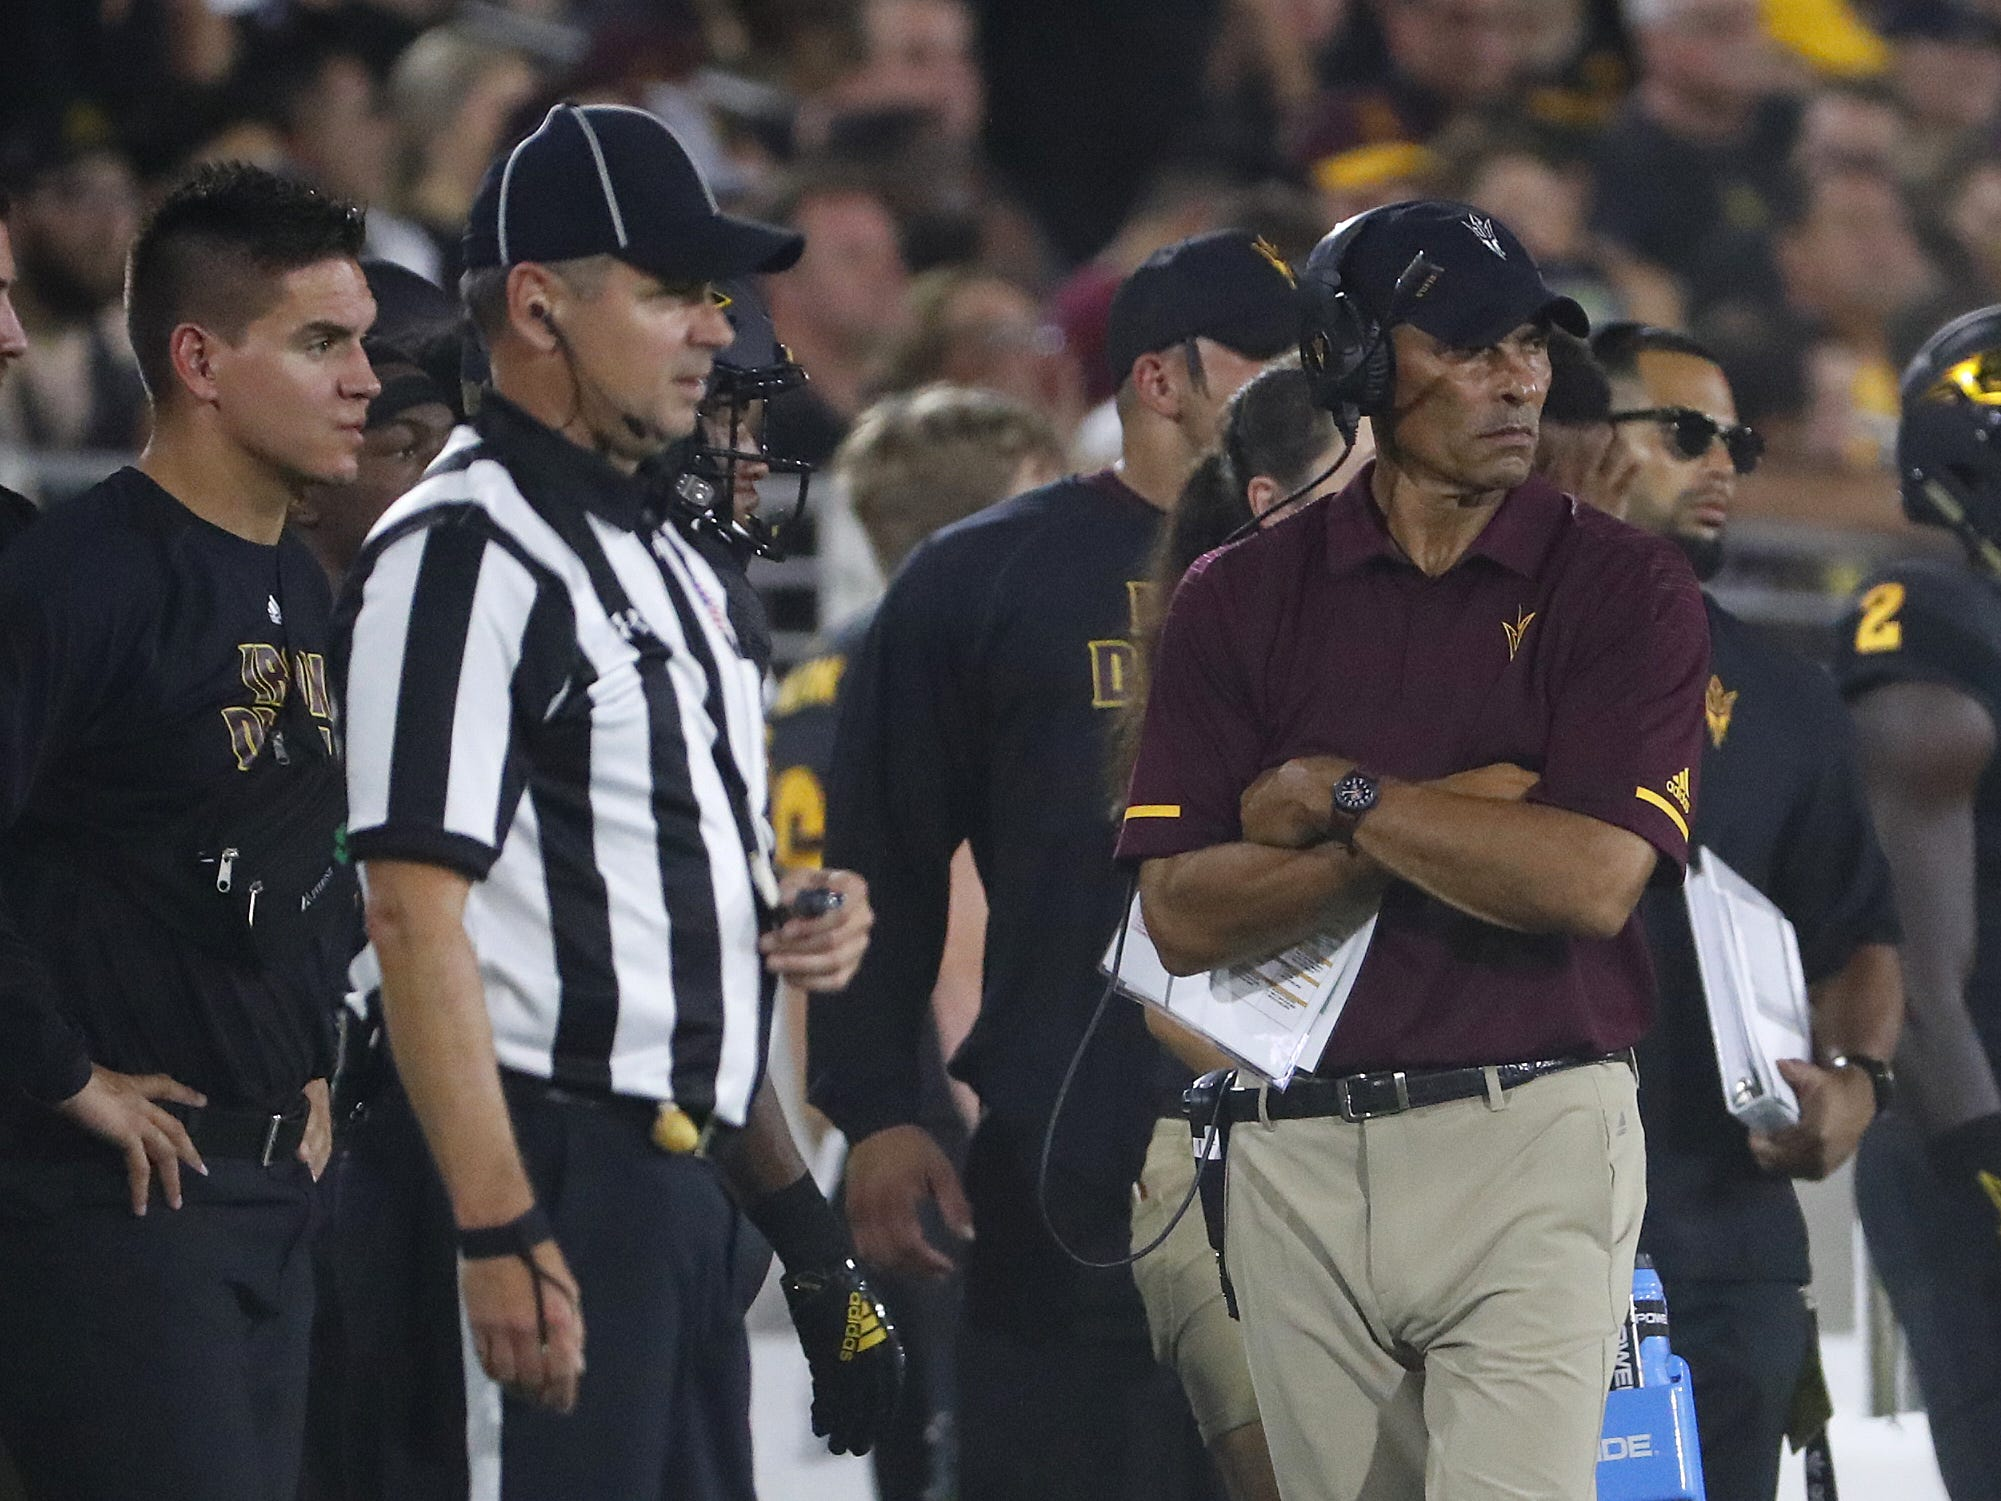 ASU's head coach Herm Edwards watches his team play during the third quarter against Michigan State at Sun Devil Stadium in Tempe, Ariz. on Sept. 8, 2018.